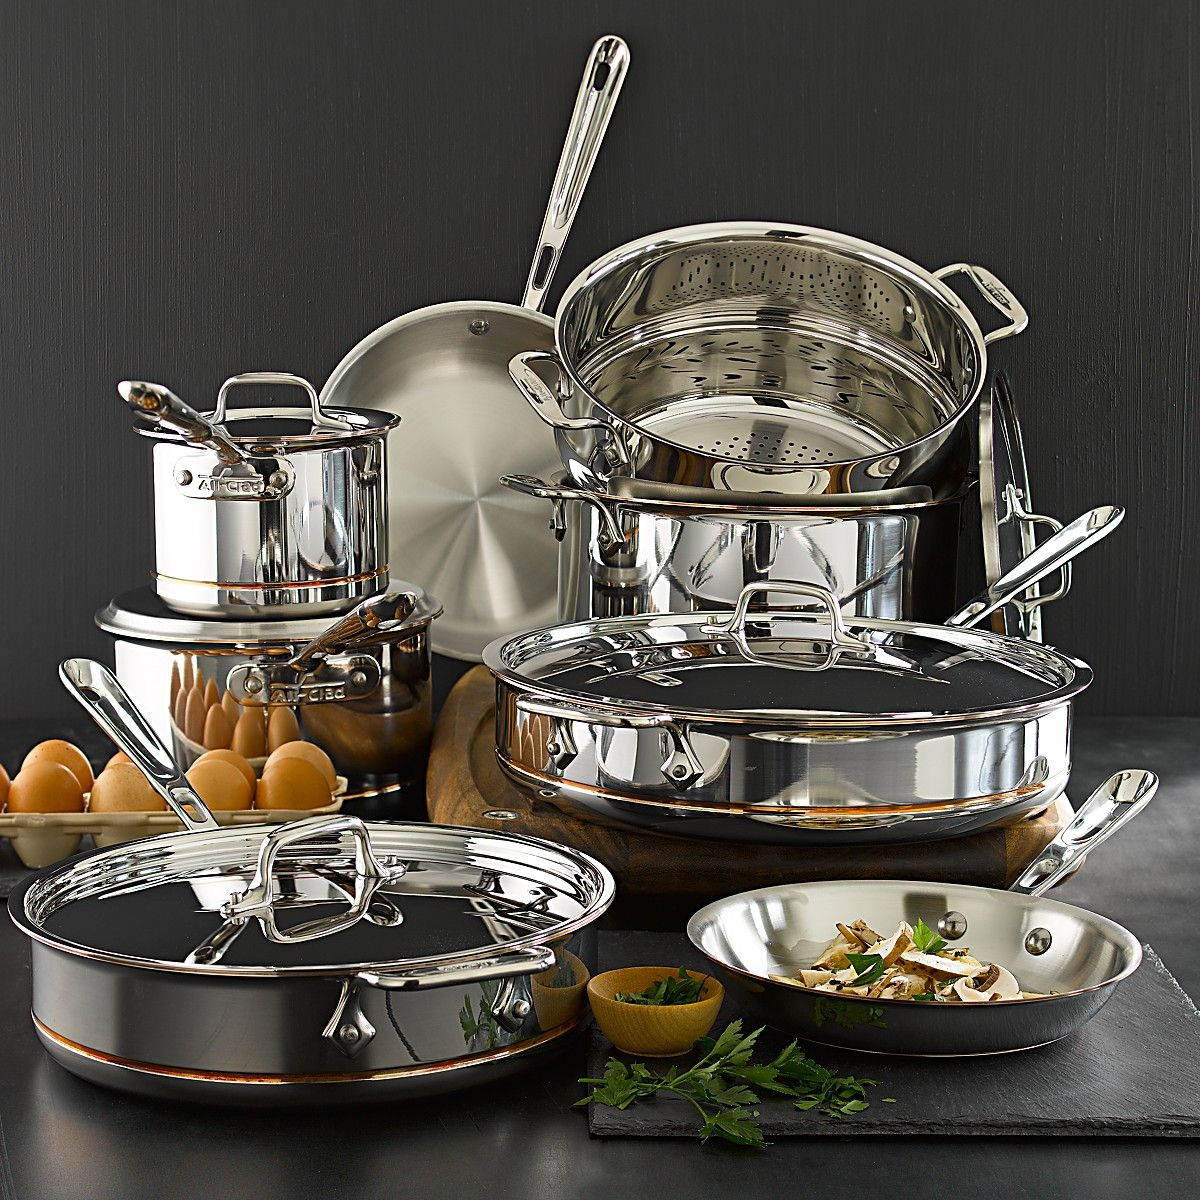 AllClad Copper Core 13 Piece Cookware Set Bloomingdales Dishes